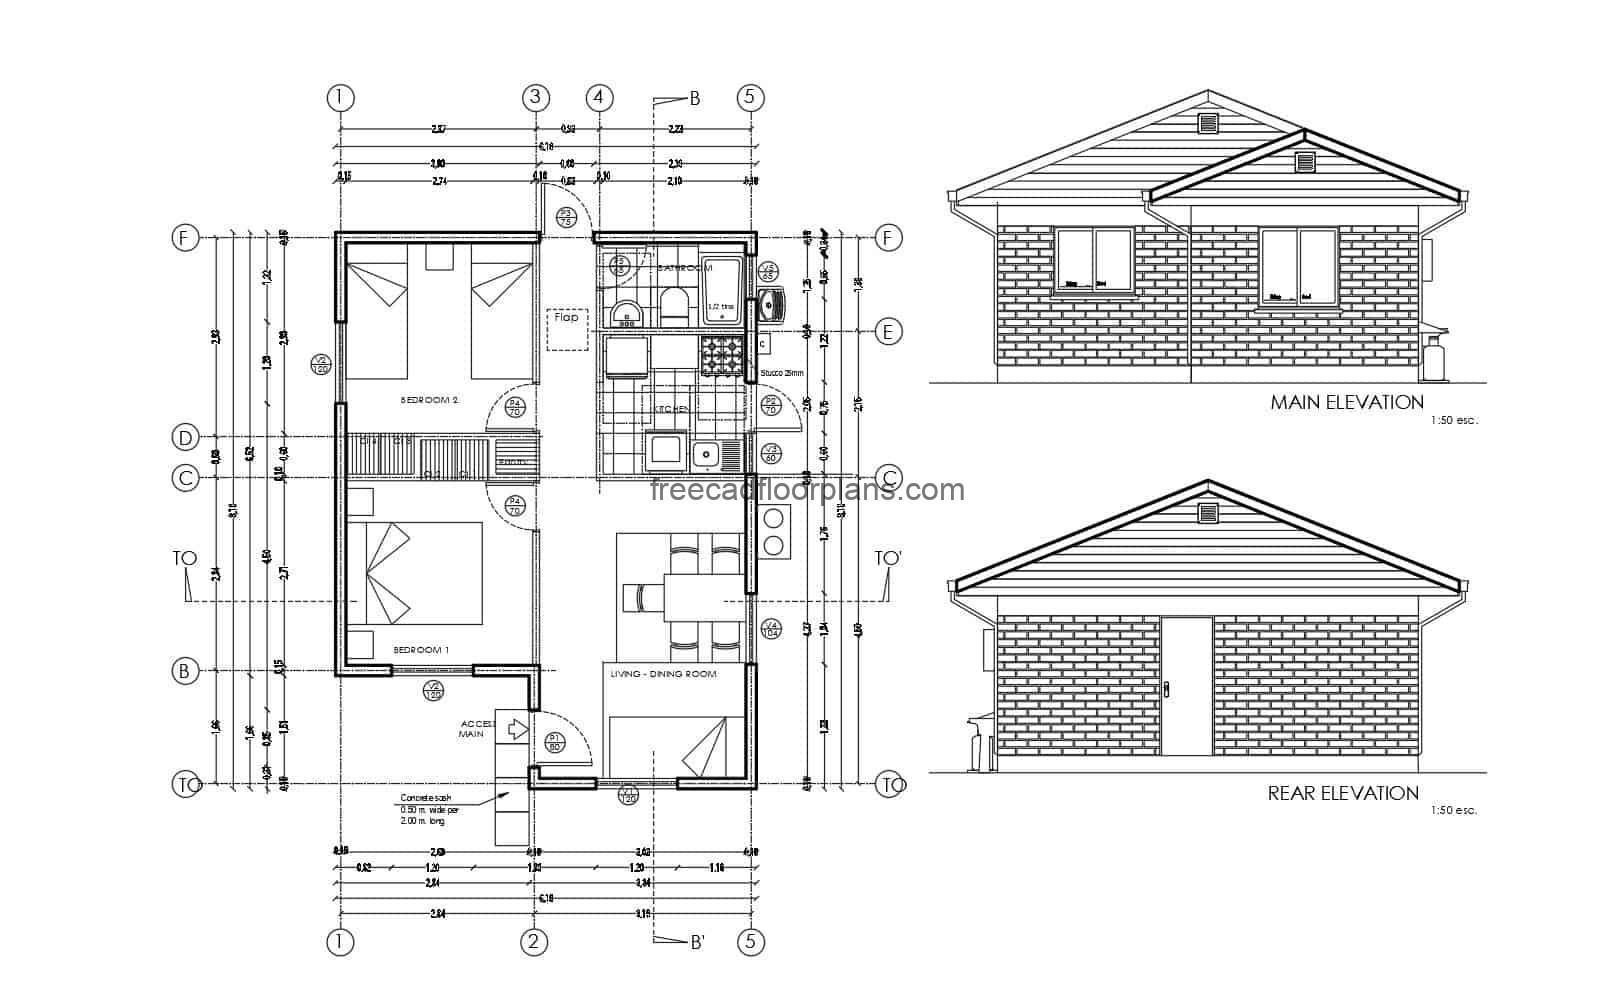 Design project for a small house with two rooms equipped with DWG autocad blocks